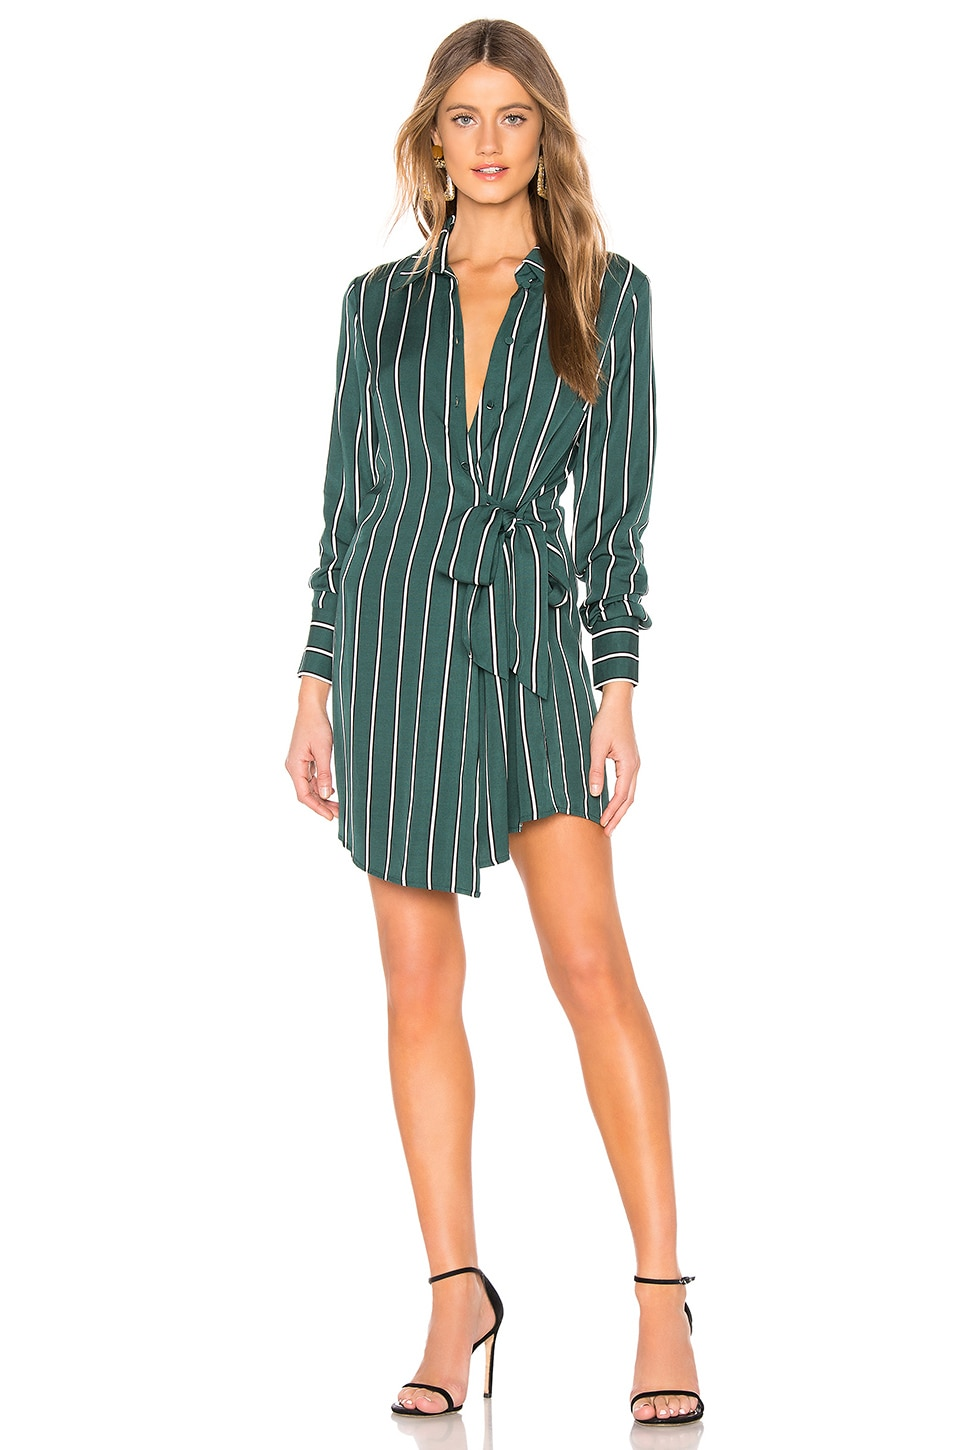 L'Academie The Sondra Mini Dress in Kelly Green Stripe